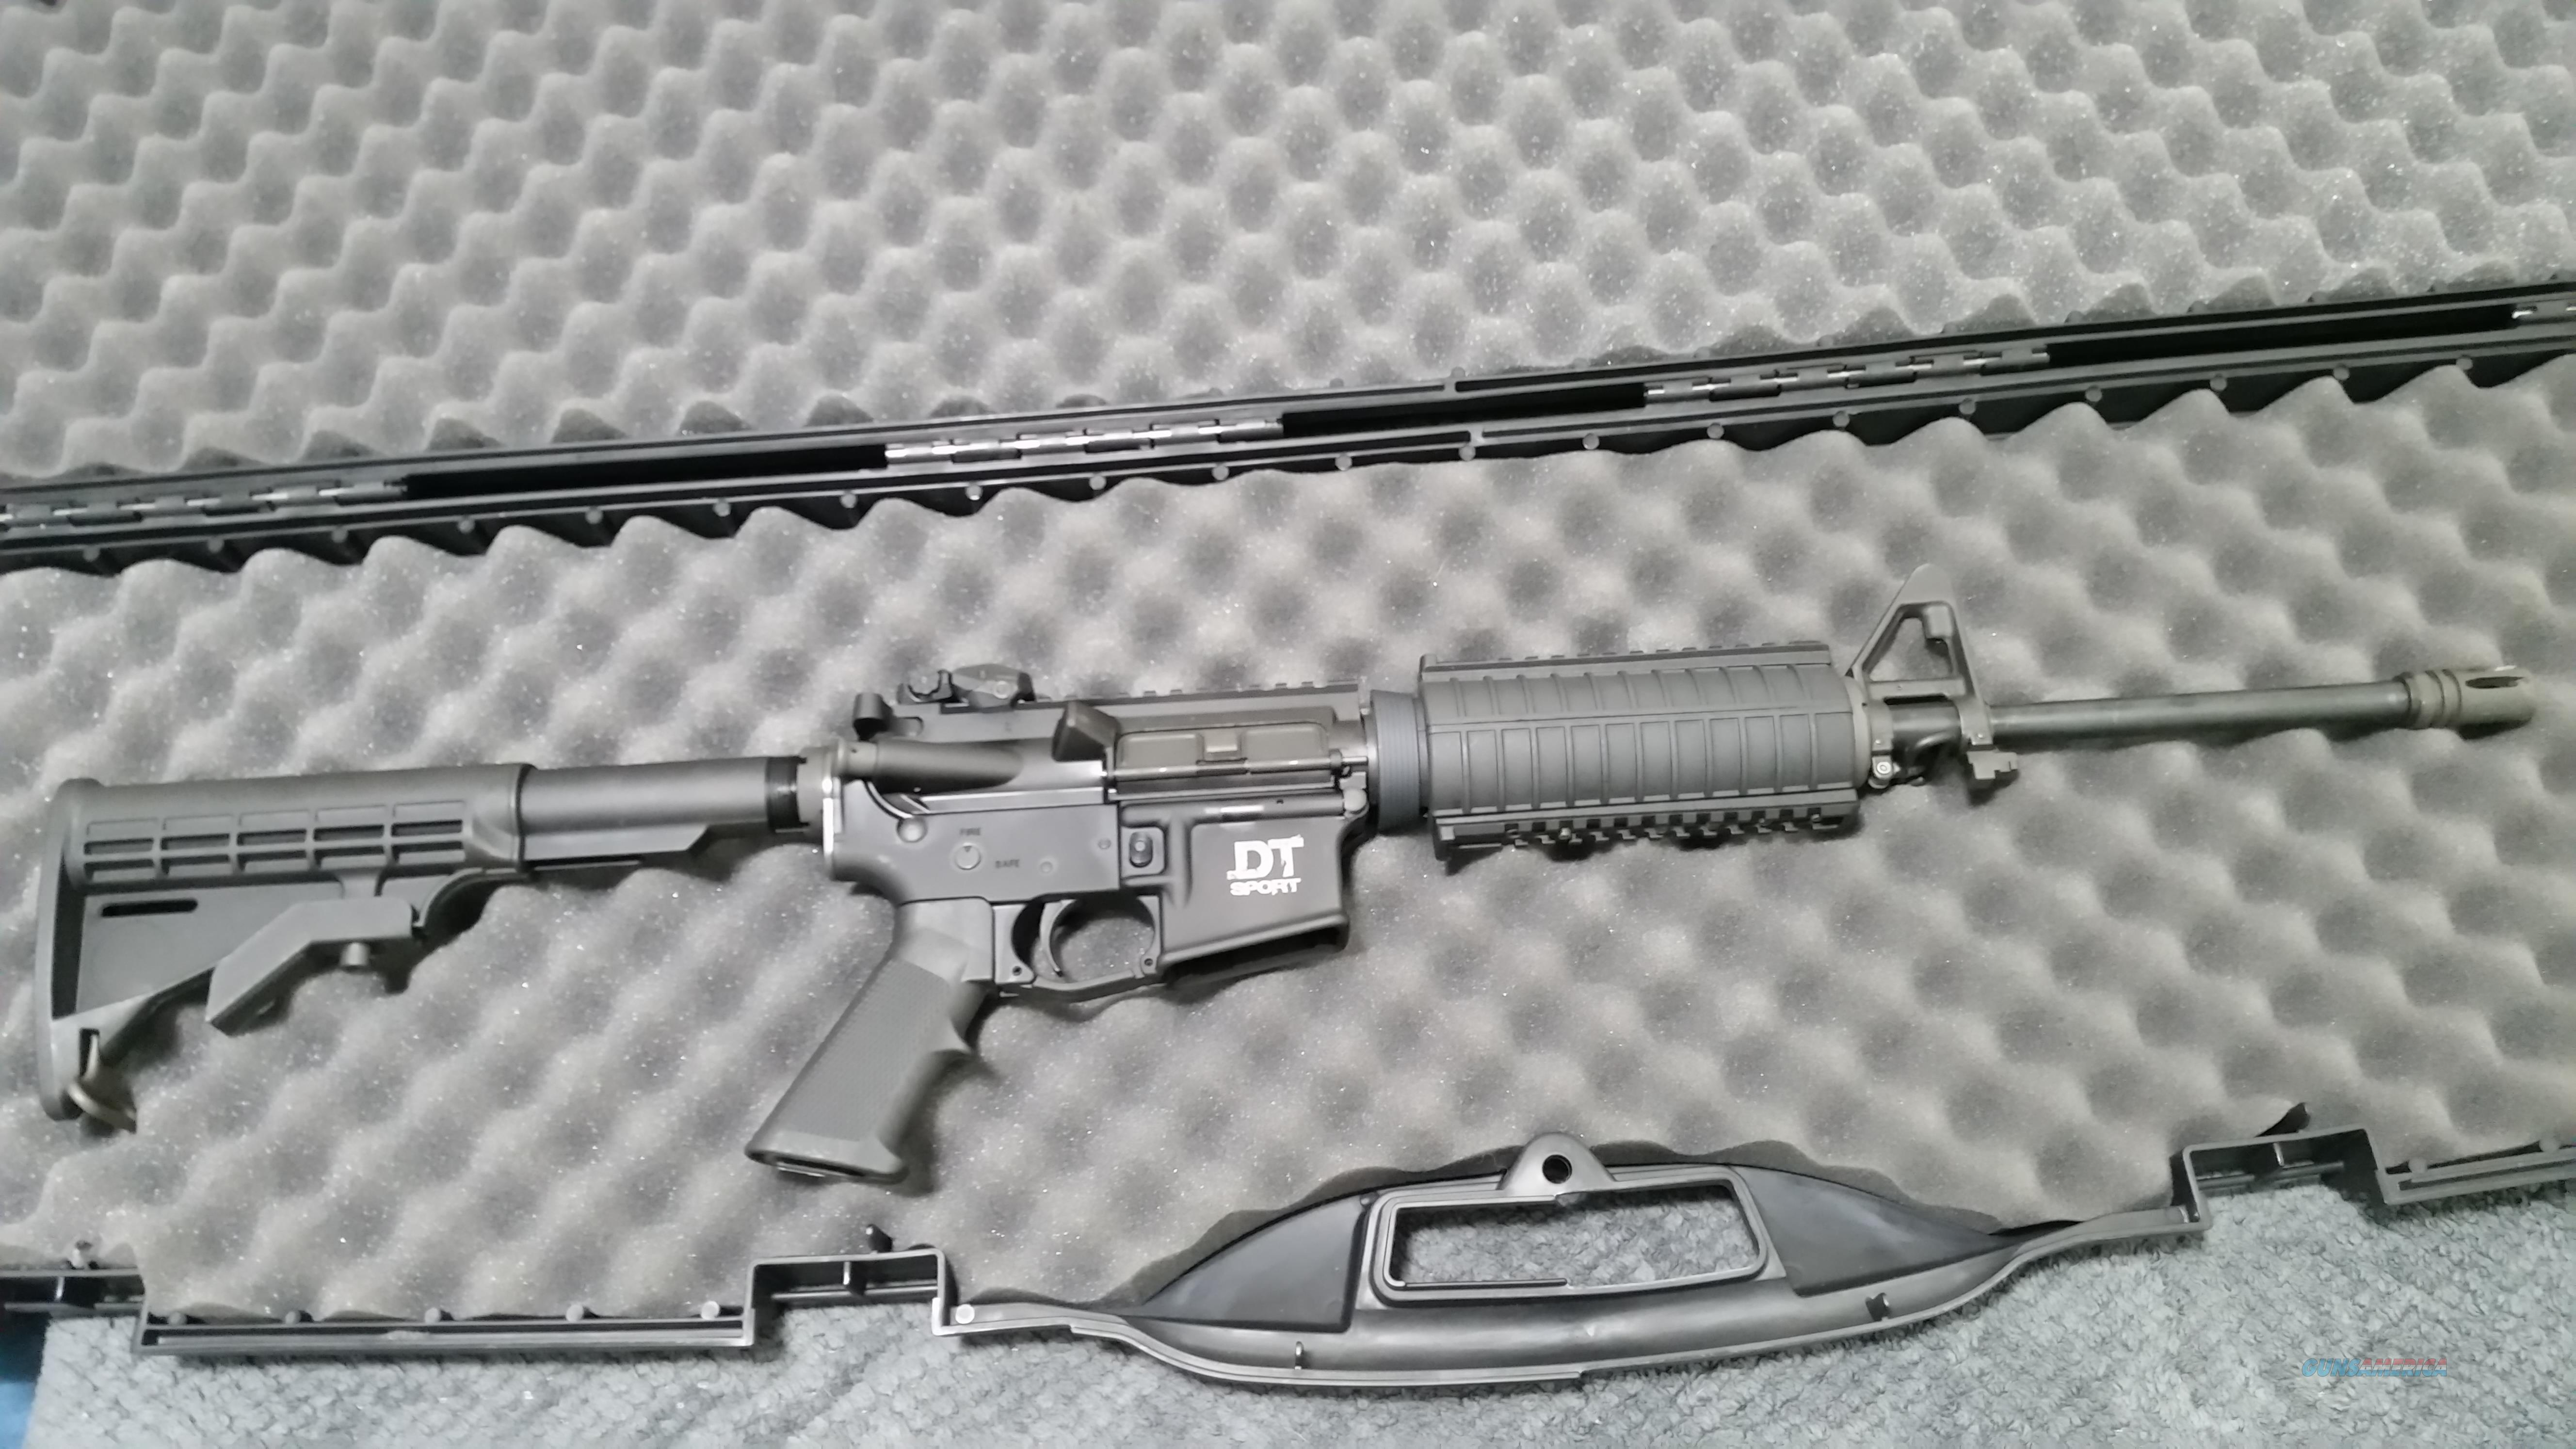 Del-Ton Sport AR-15  Guns > Rifles > AR-15 Rifles - Small Manufacturers > Complete Rifle